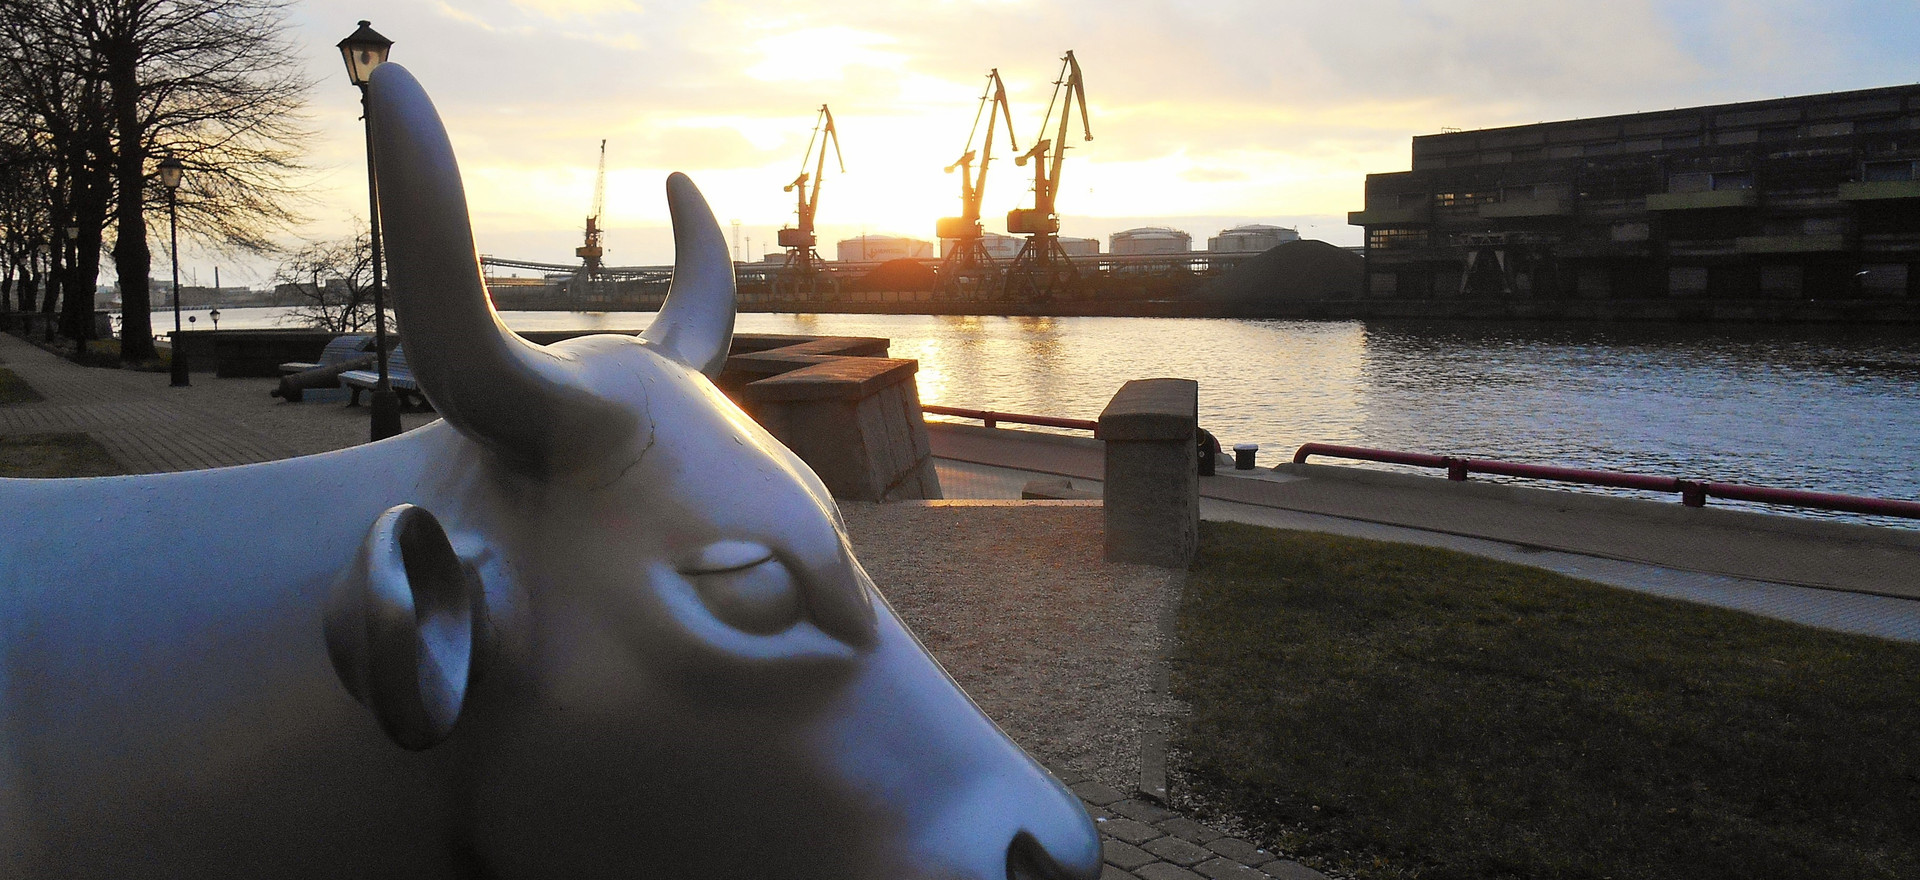 Cow's keeping the silence at sunset, Ventspils, April 2017